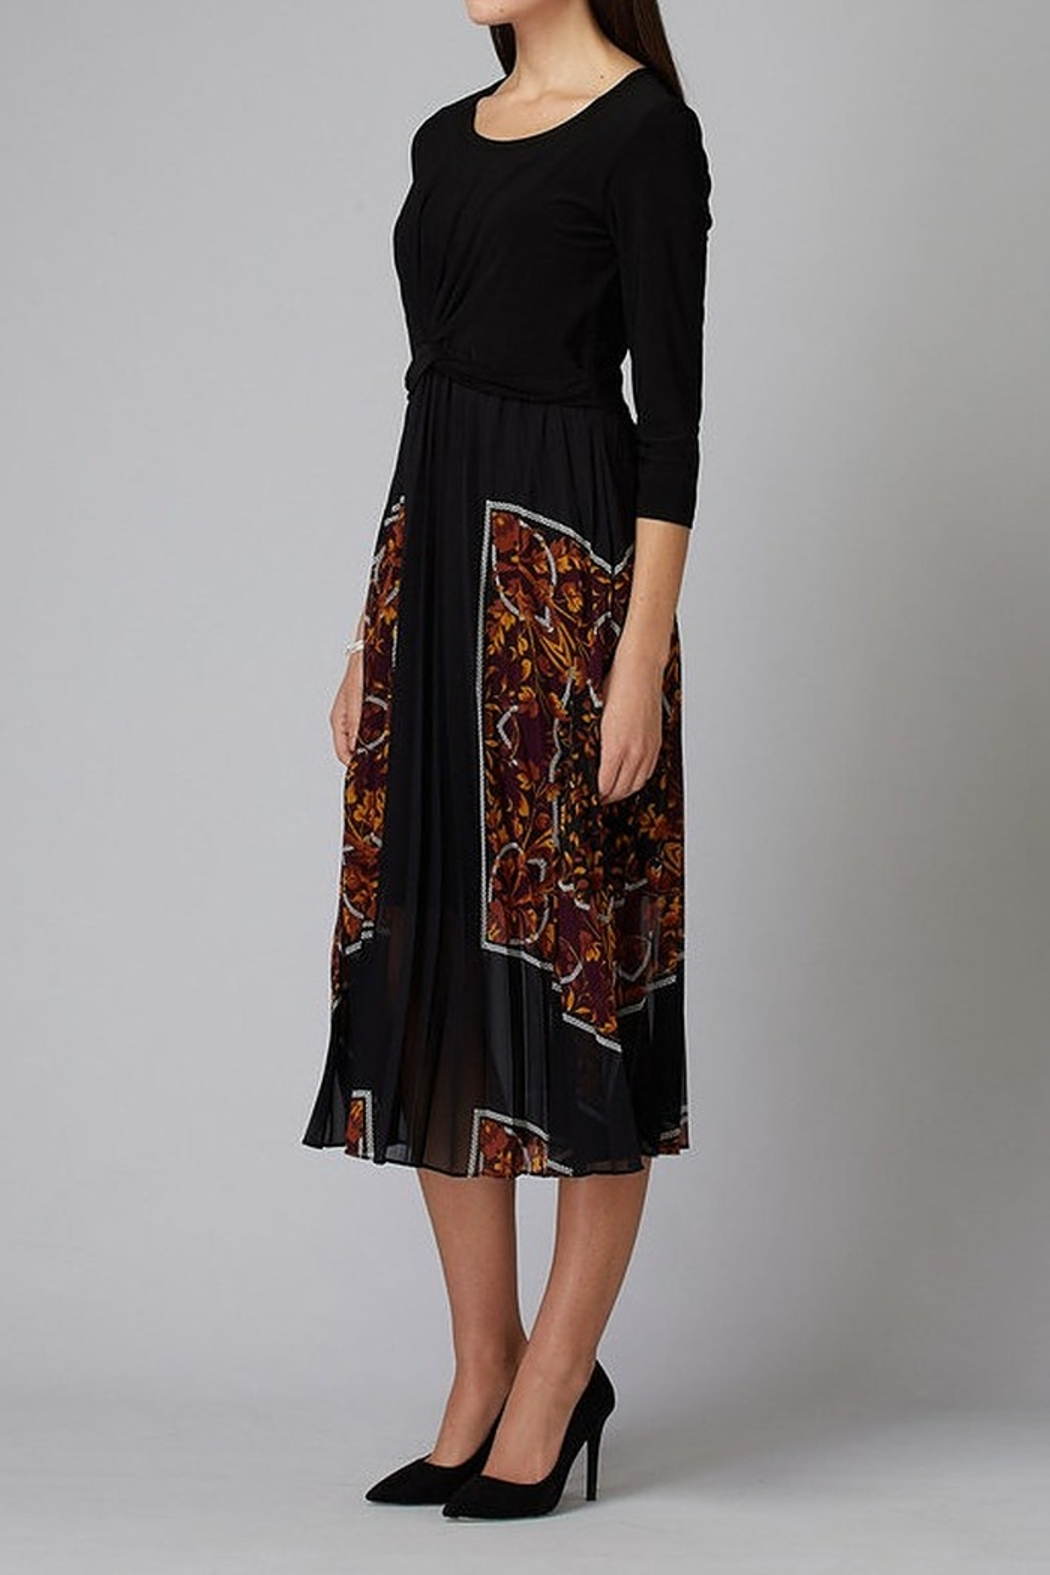 Joseph Ribkoff 3/4 Slv Midi Dress - Side Cropped Image